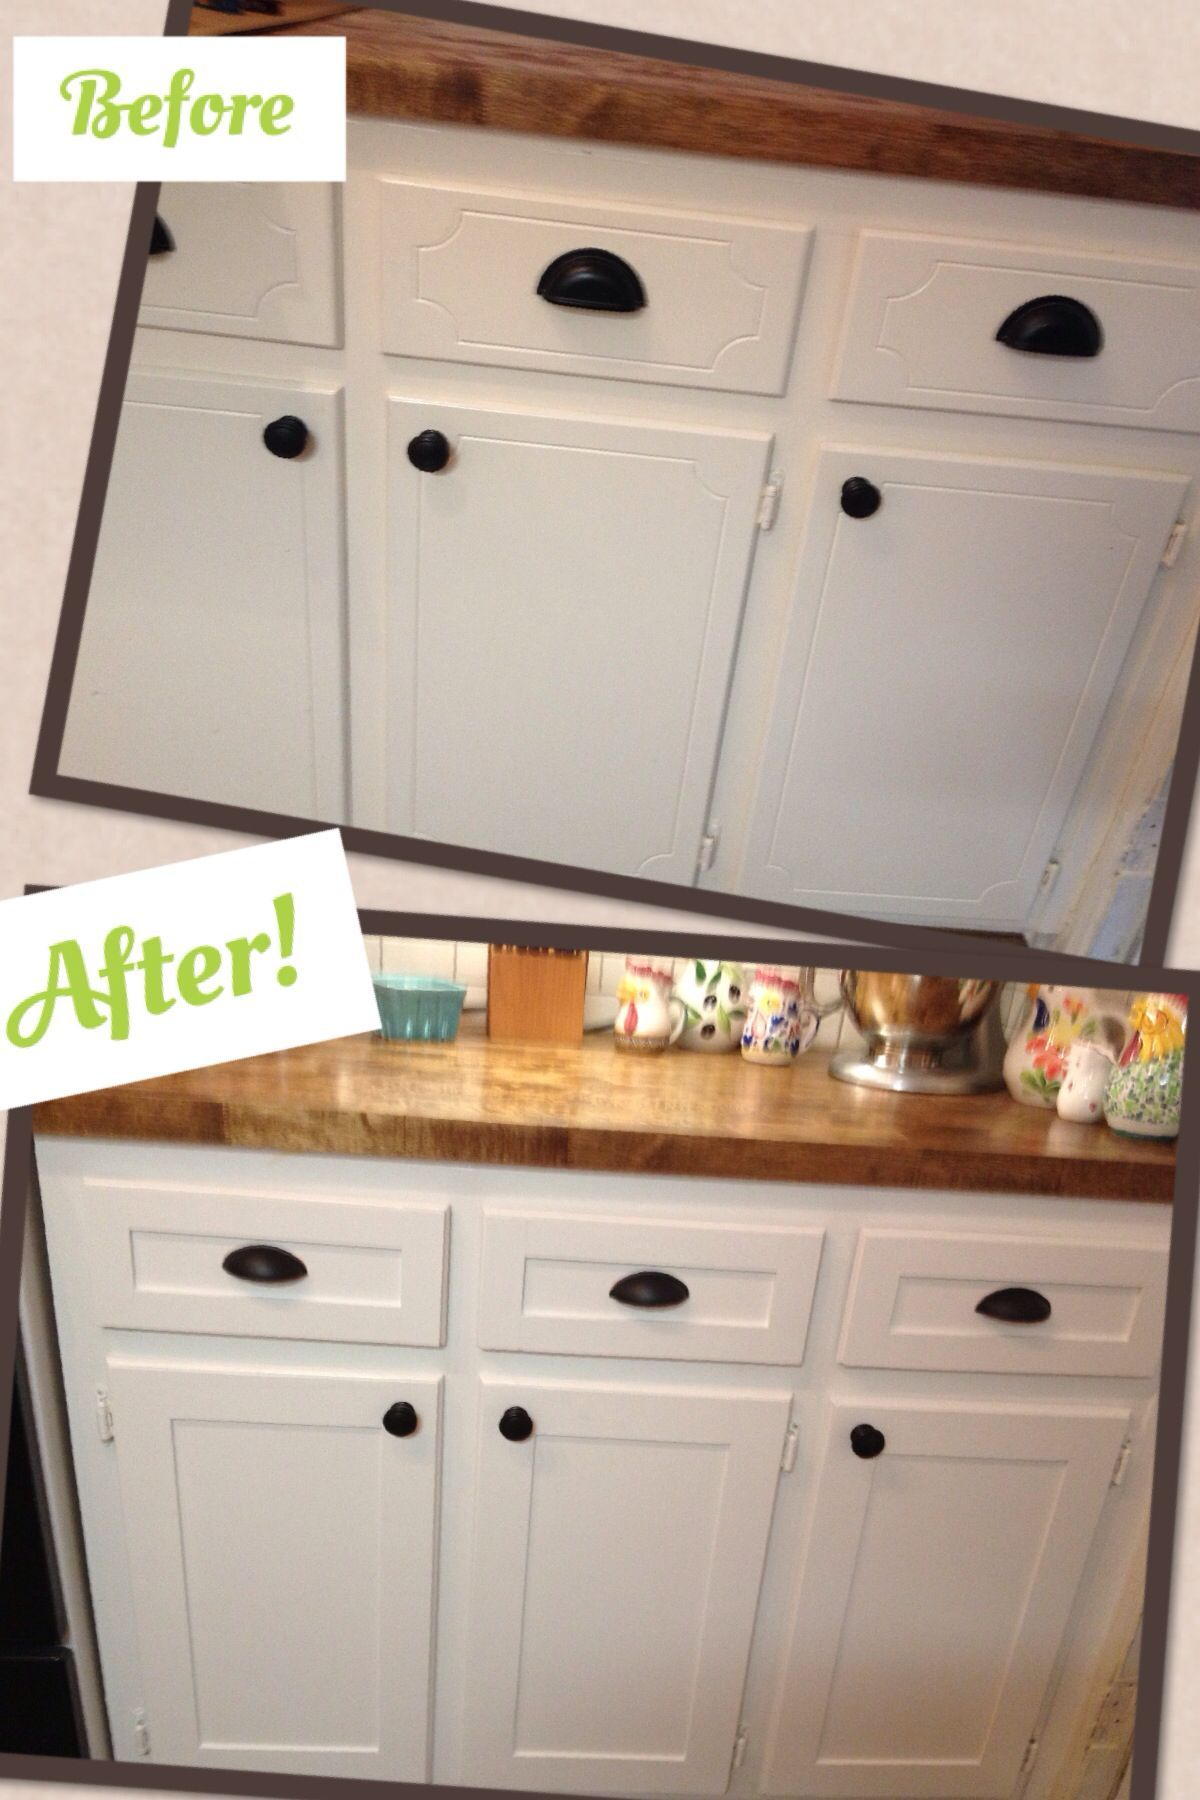 Kitchen Cabinet Refacing Project Diy Shaker Trim Done Before And Refacing Kitchen Cabinets Refacing Kitchen Cabinets Diy Kitchen Cabinets Before And After